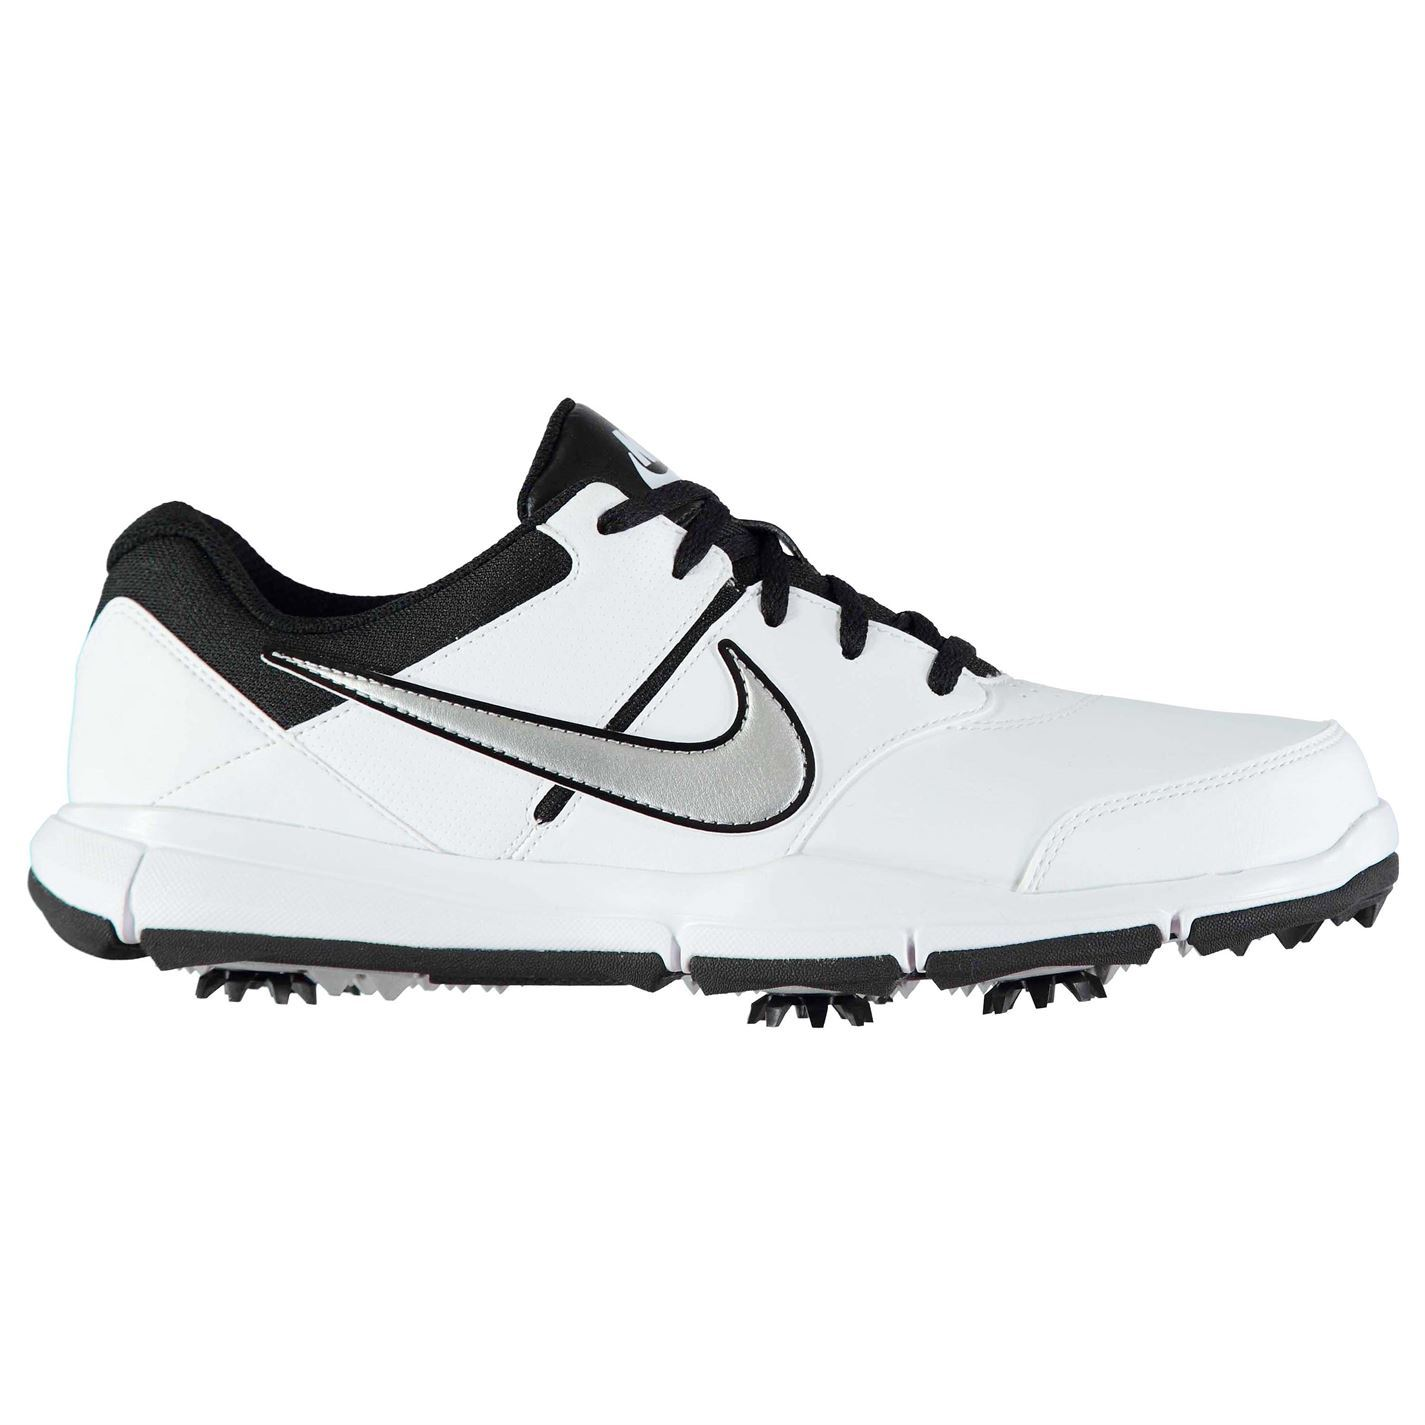 Nike-Durasport-4-Spiked-Golf-Shoes-Mens-Spikes-Footwear thumbnail 16